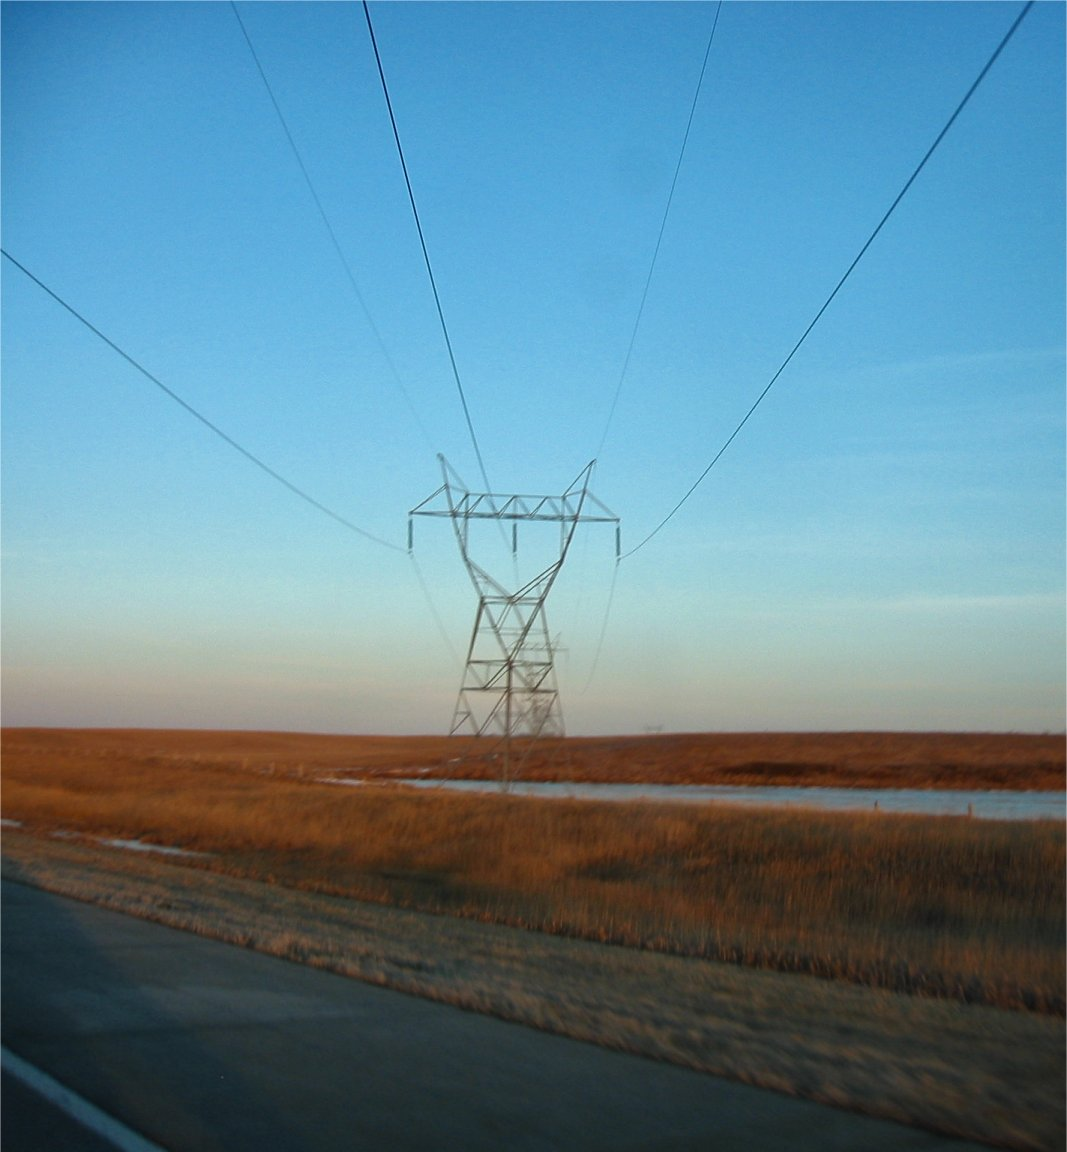 I94 - North Dakota - High tension power lines - March 2005 - soul-amp.com